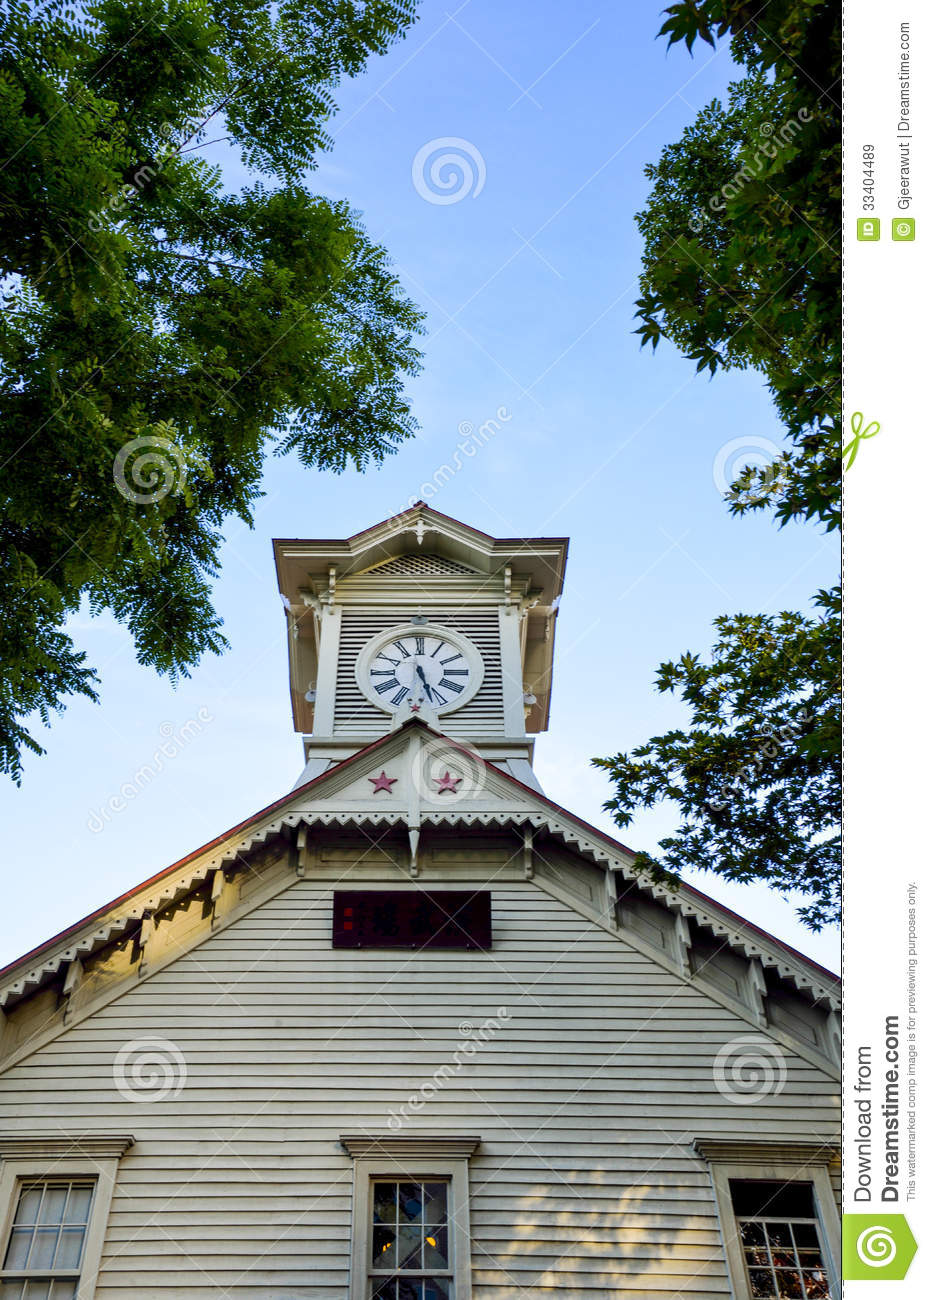 Sapporo Clock Tower In Sapporo Japan Royalty Free Stock Images - Image: 33404489